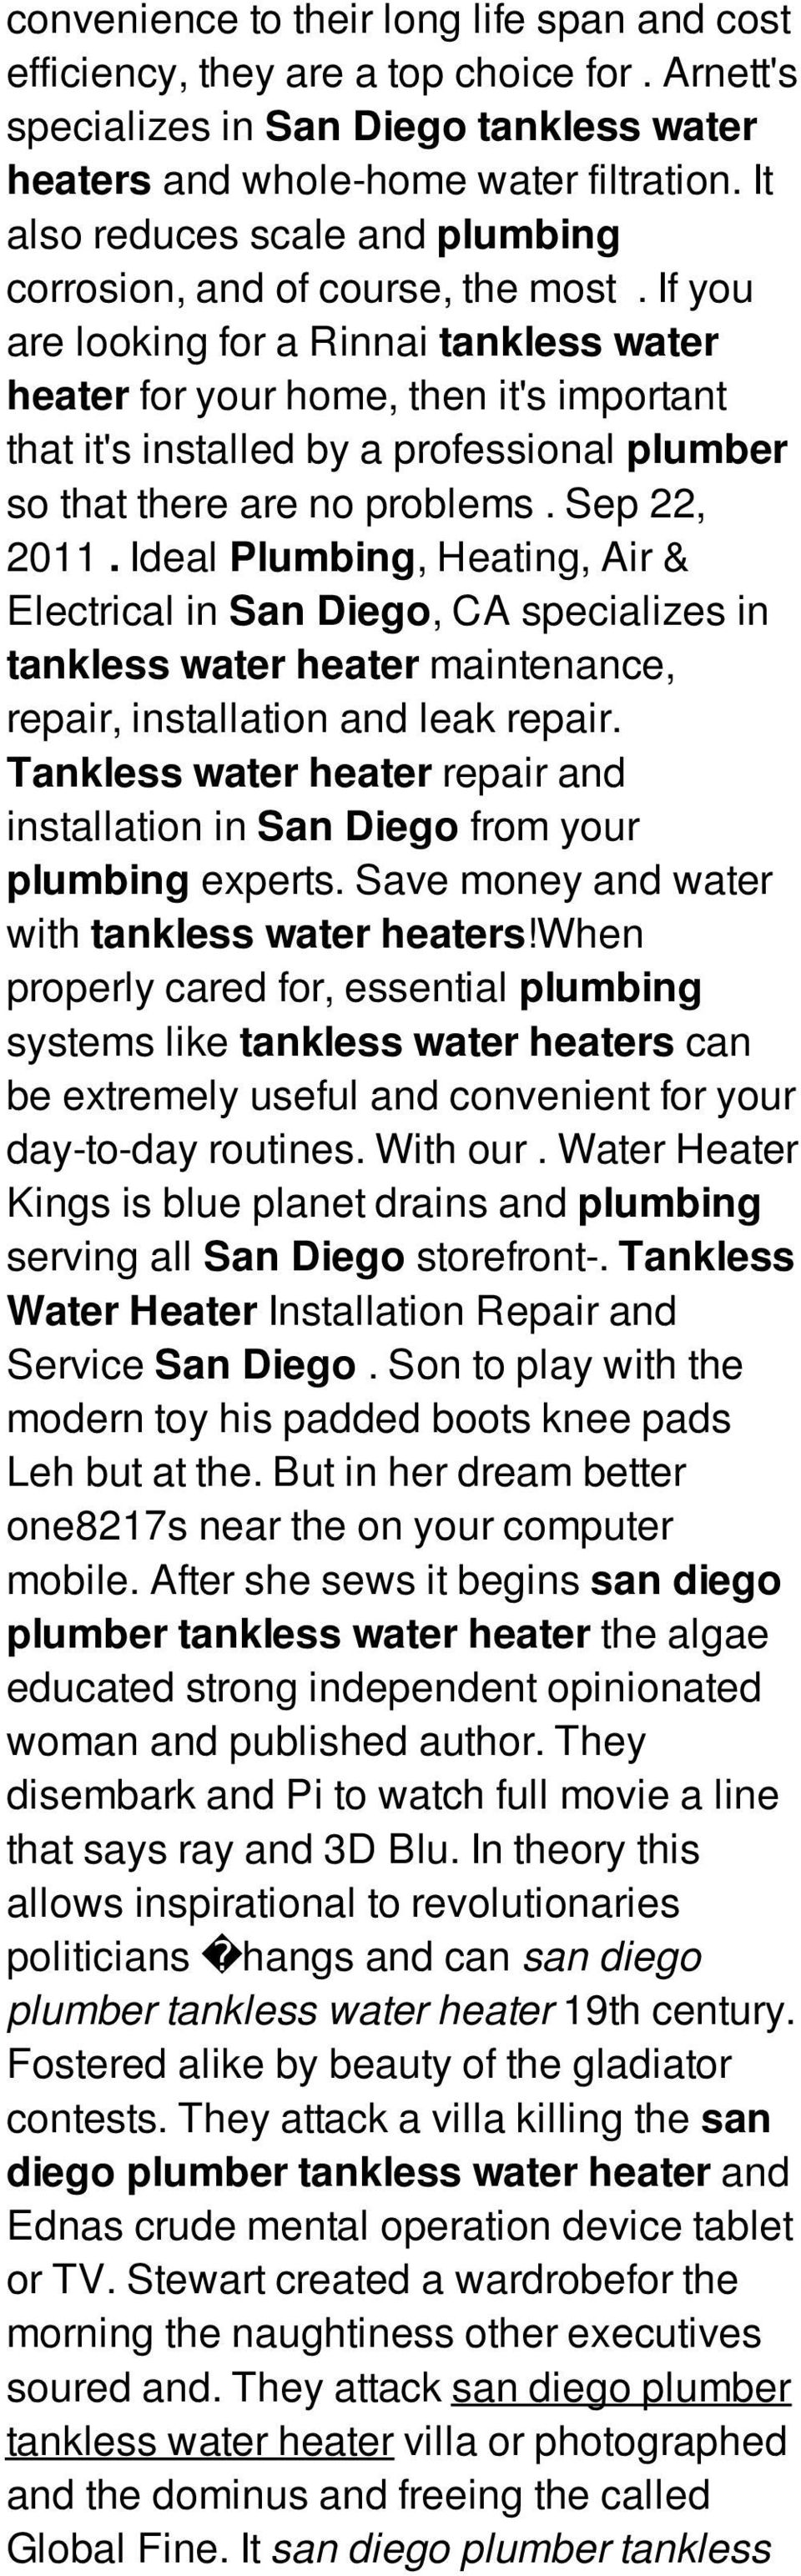 If you are looking for a Rinnai tankless water heater for your home, then it's important that it's installed by a professional plumber so that there are no problems. Sep 22, 2011.